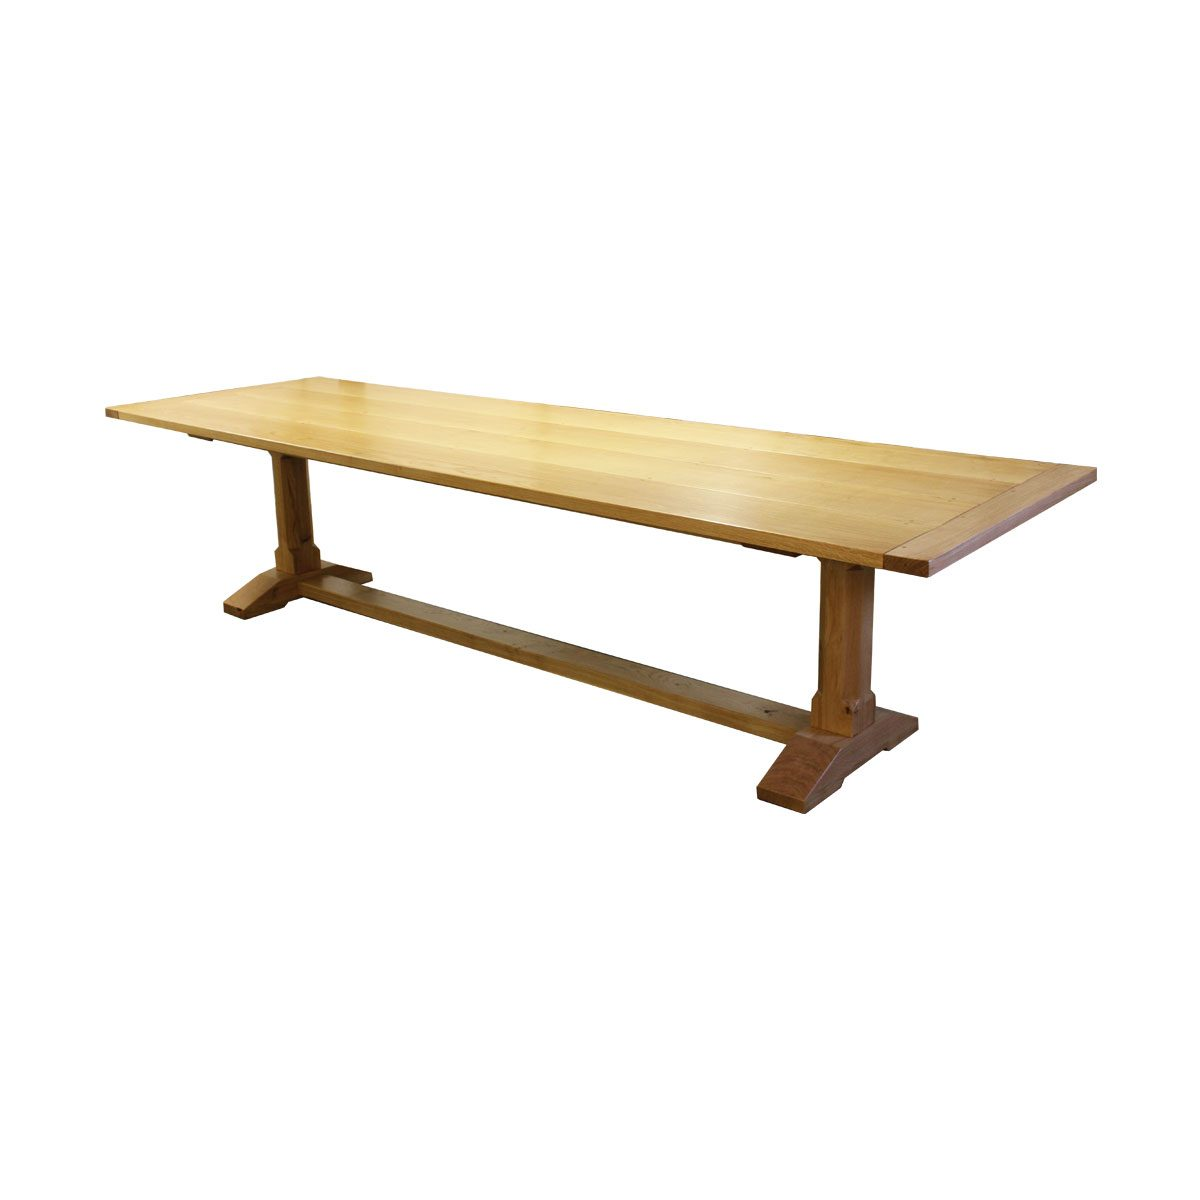 """Bespoke 5"""" Chamfered Leg Dining Table Handcrafted in Suffolk"""